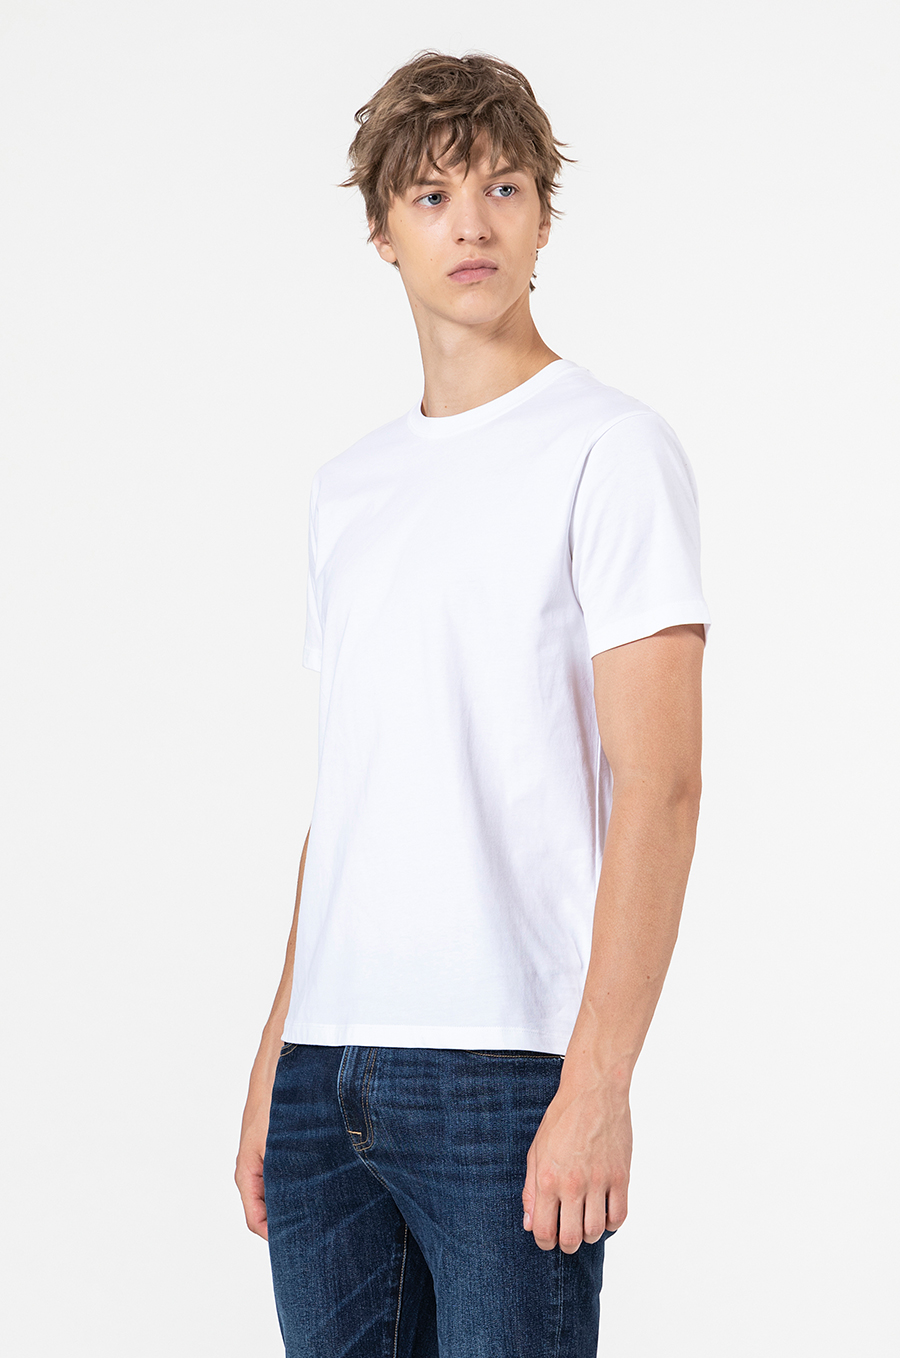 2020 summer new 100% cotton white solid T-shirt